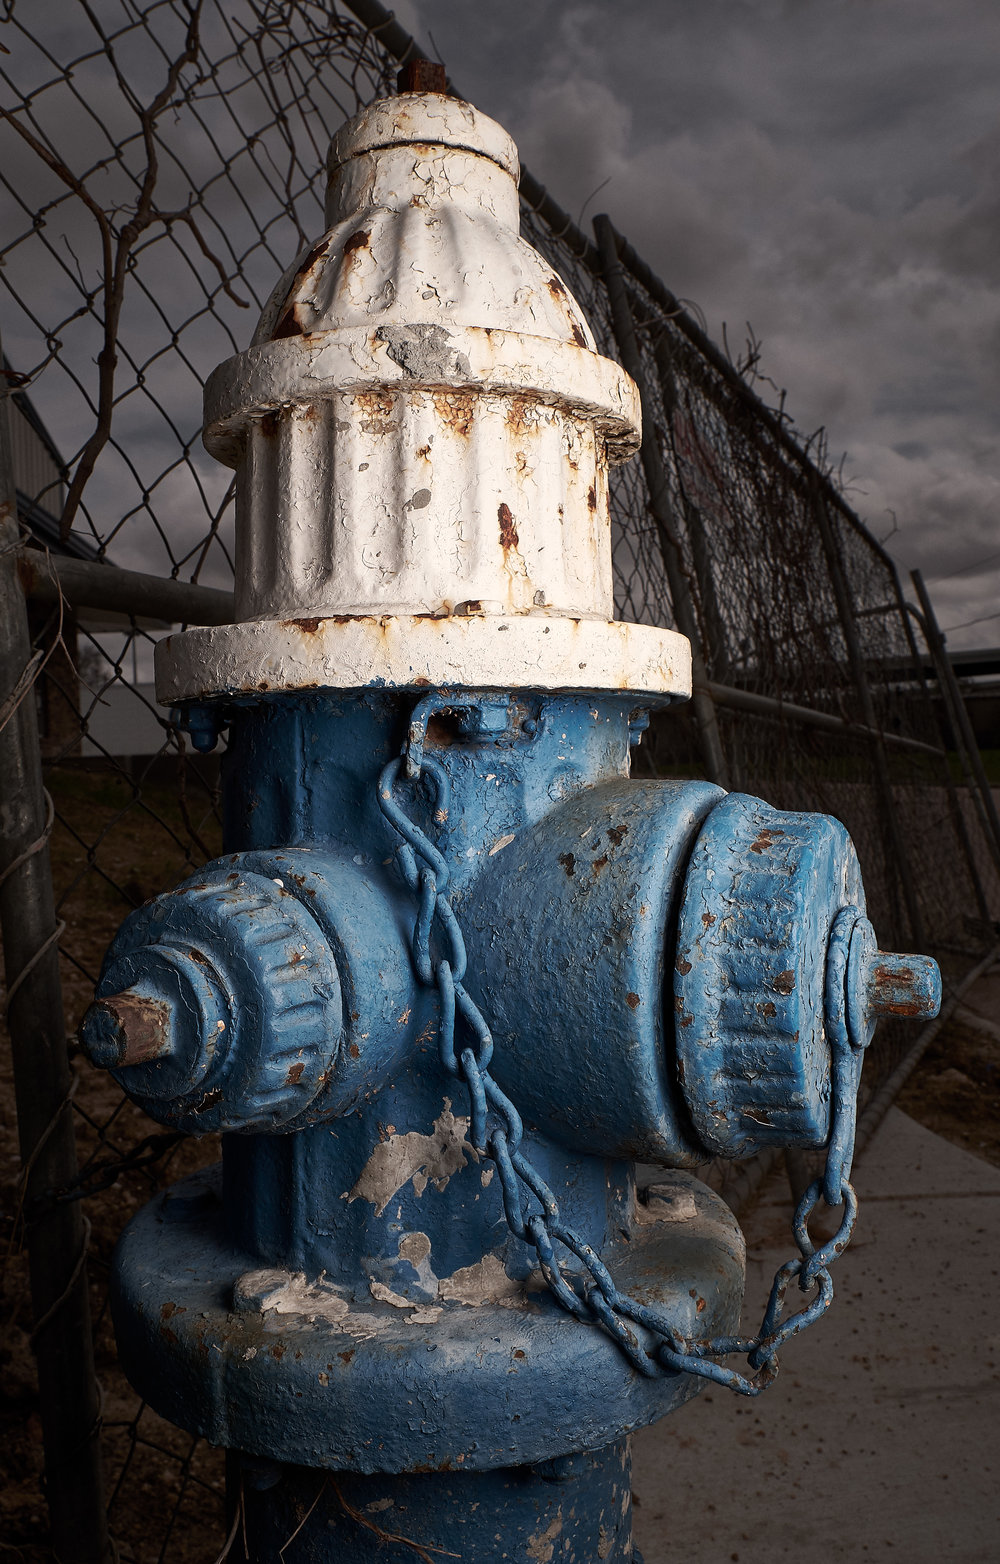 Hydrant Portrait #22